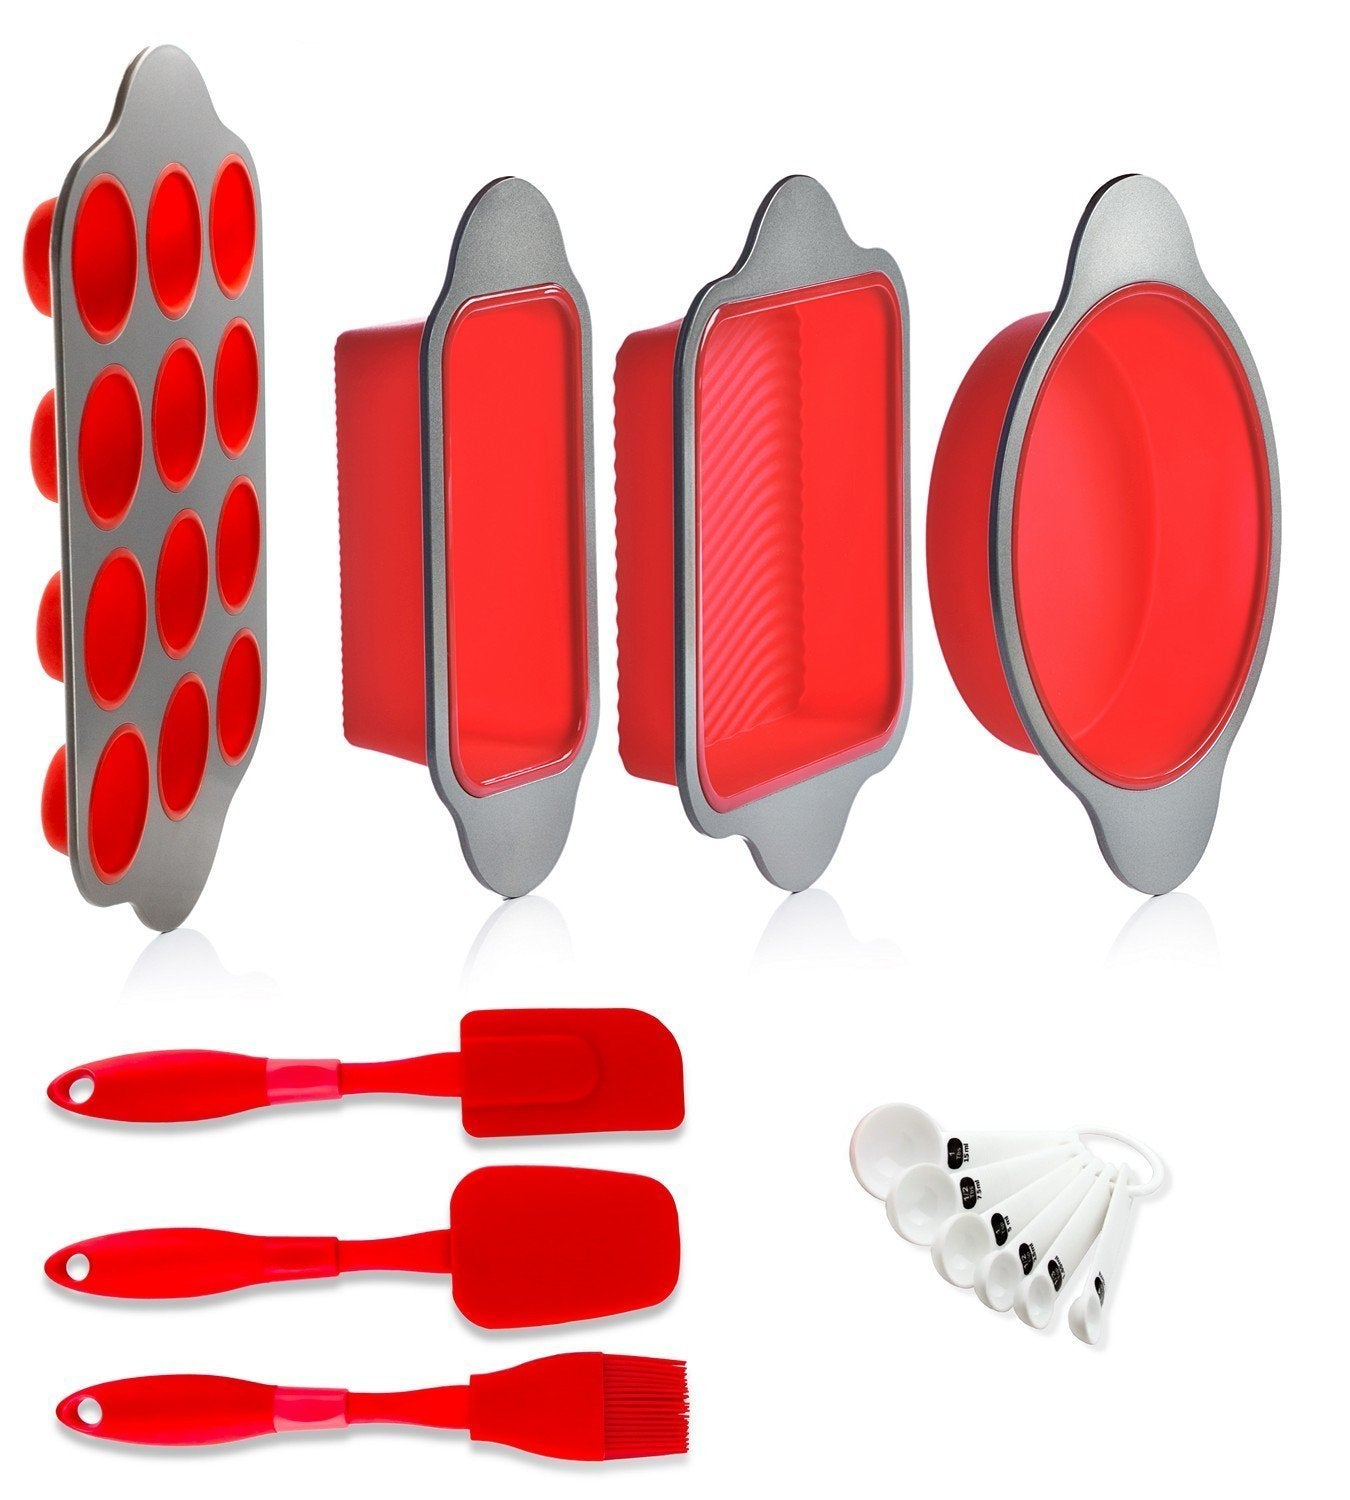 Selection silicone baking molds pans and utensils set of 13 by boxiki kitchen silicone cake pan brownie pan loaf pan muffin mold 2 spatulas brush and 6 measuring spoons